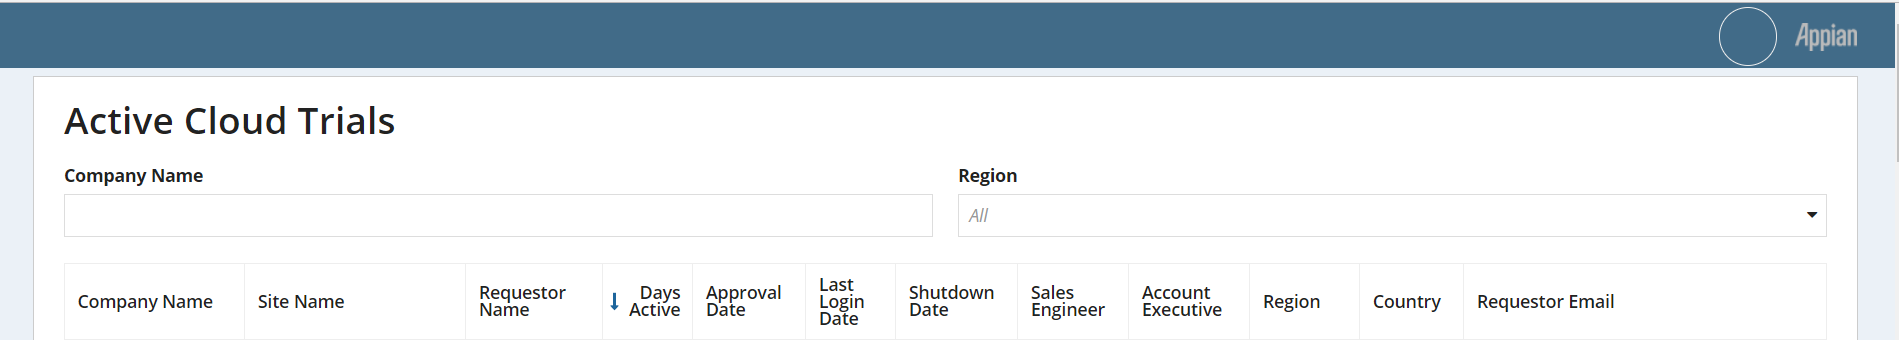 kb 1471 tempo tabs are lost after opening a report in a new tab in